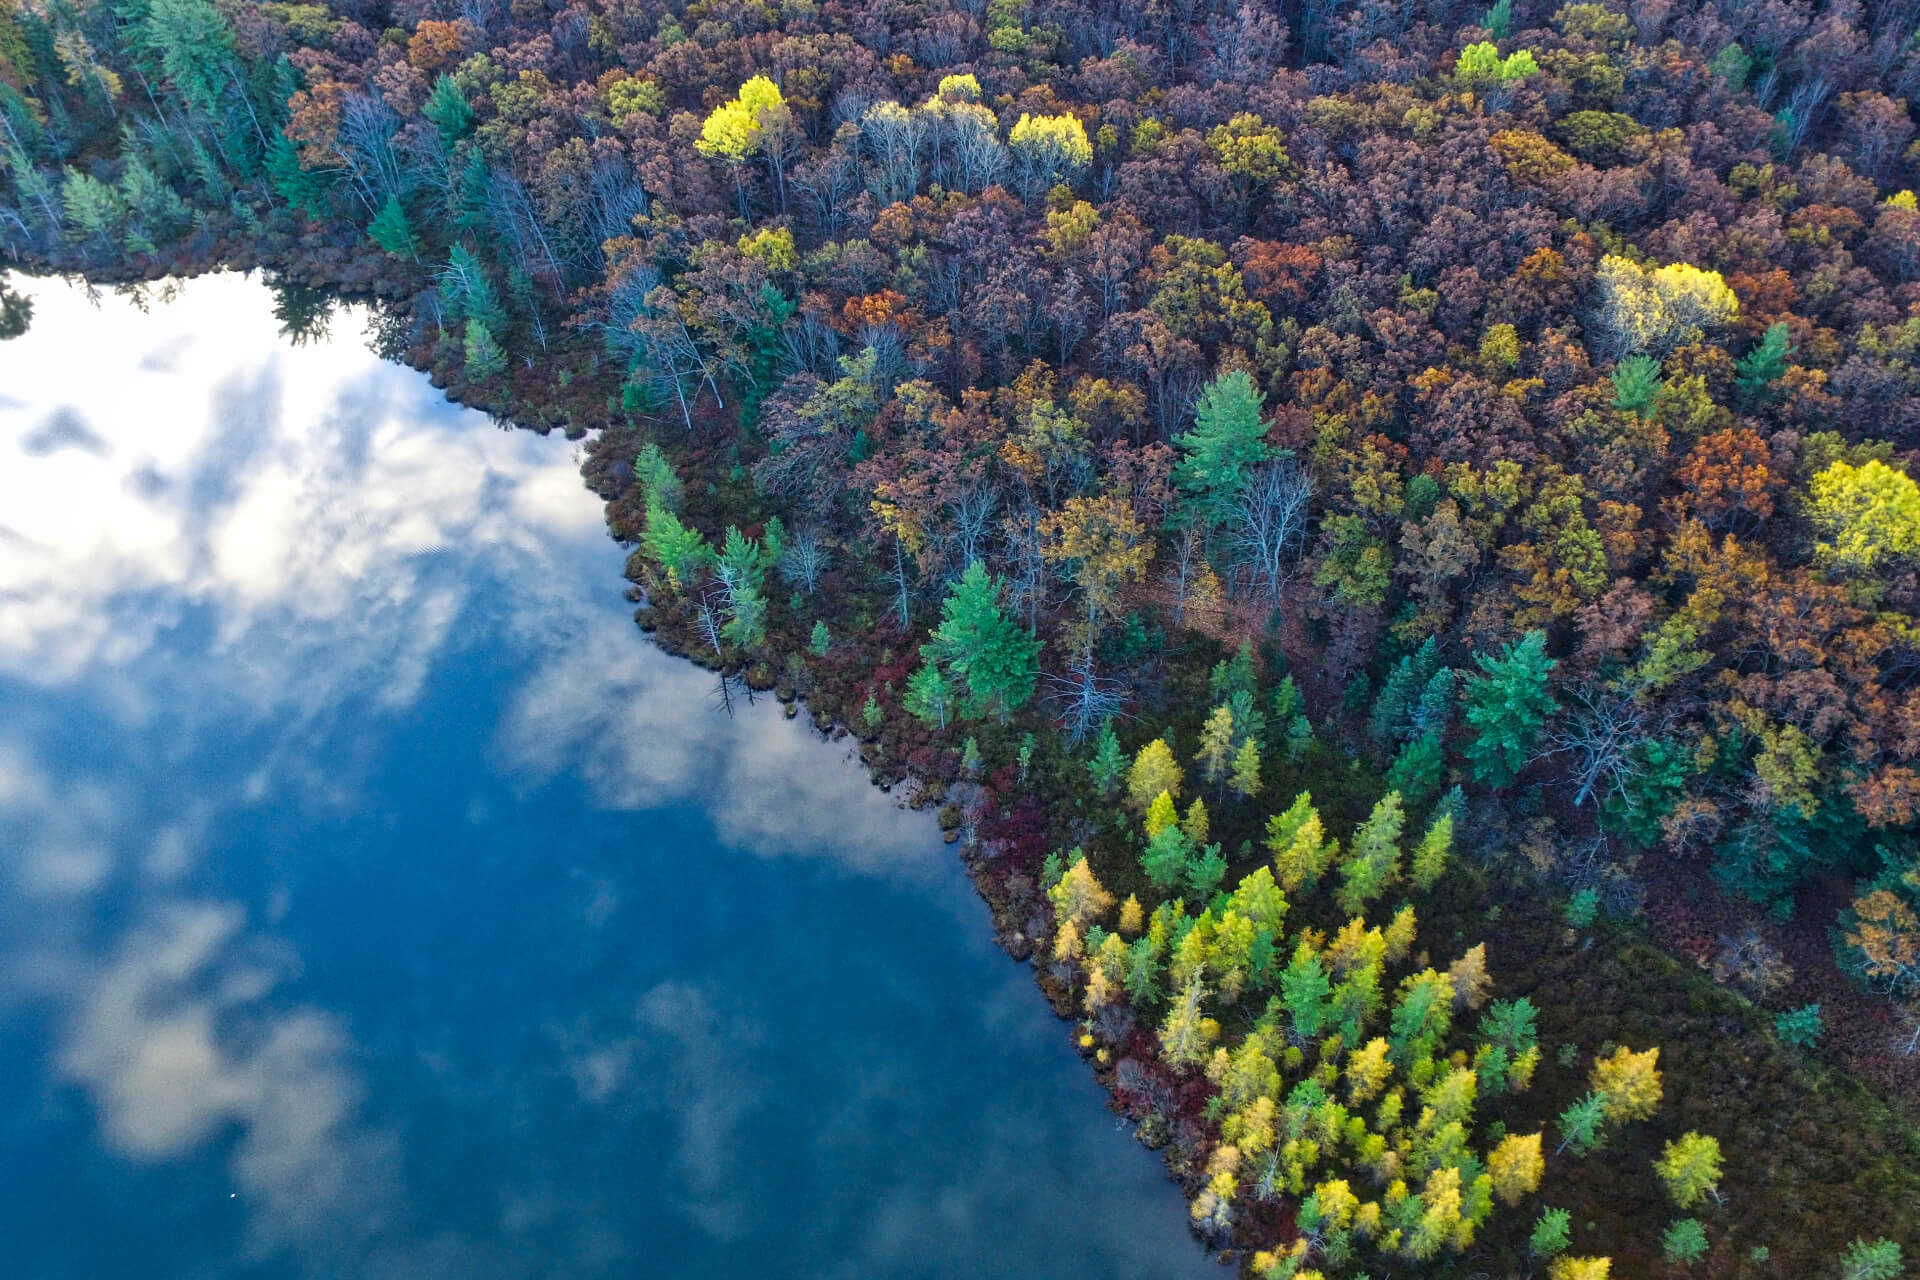 A river reflecting the sky and a forest with different types of tress